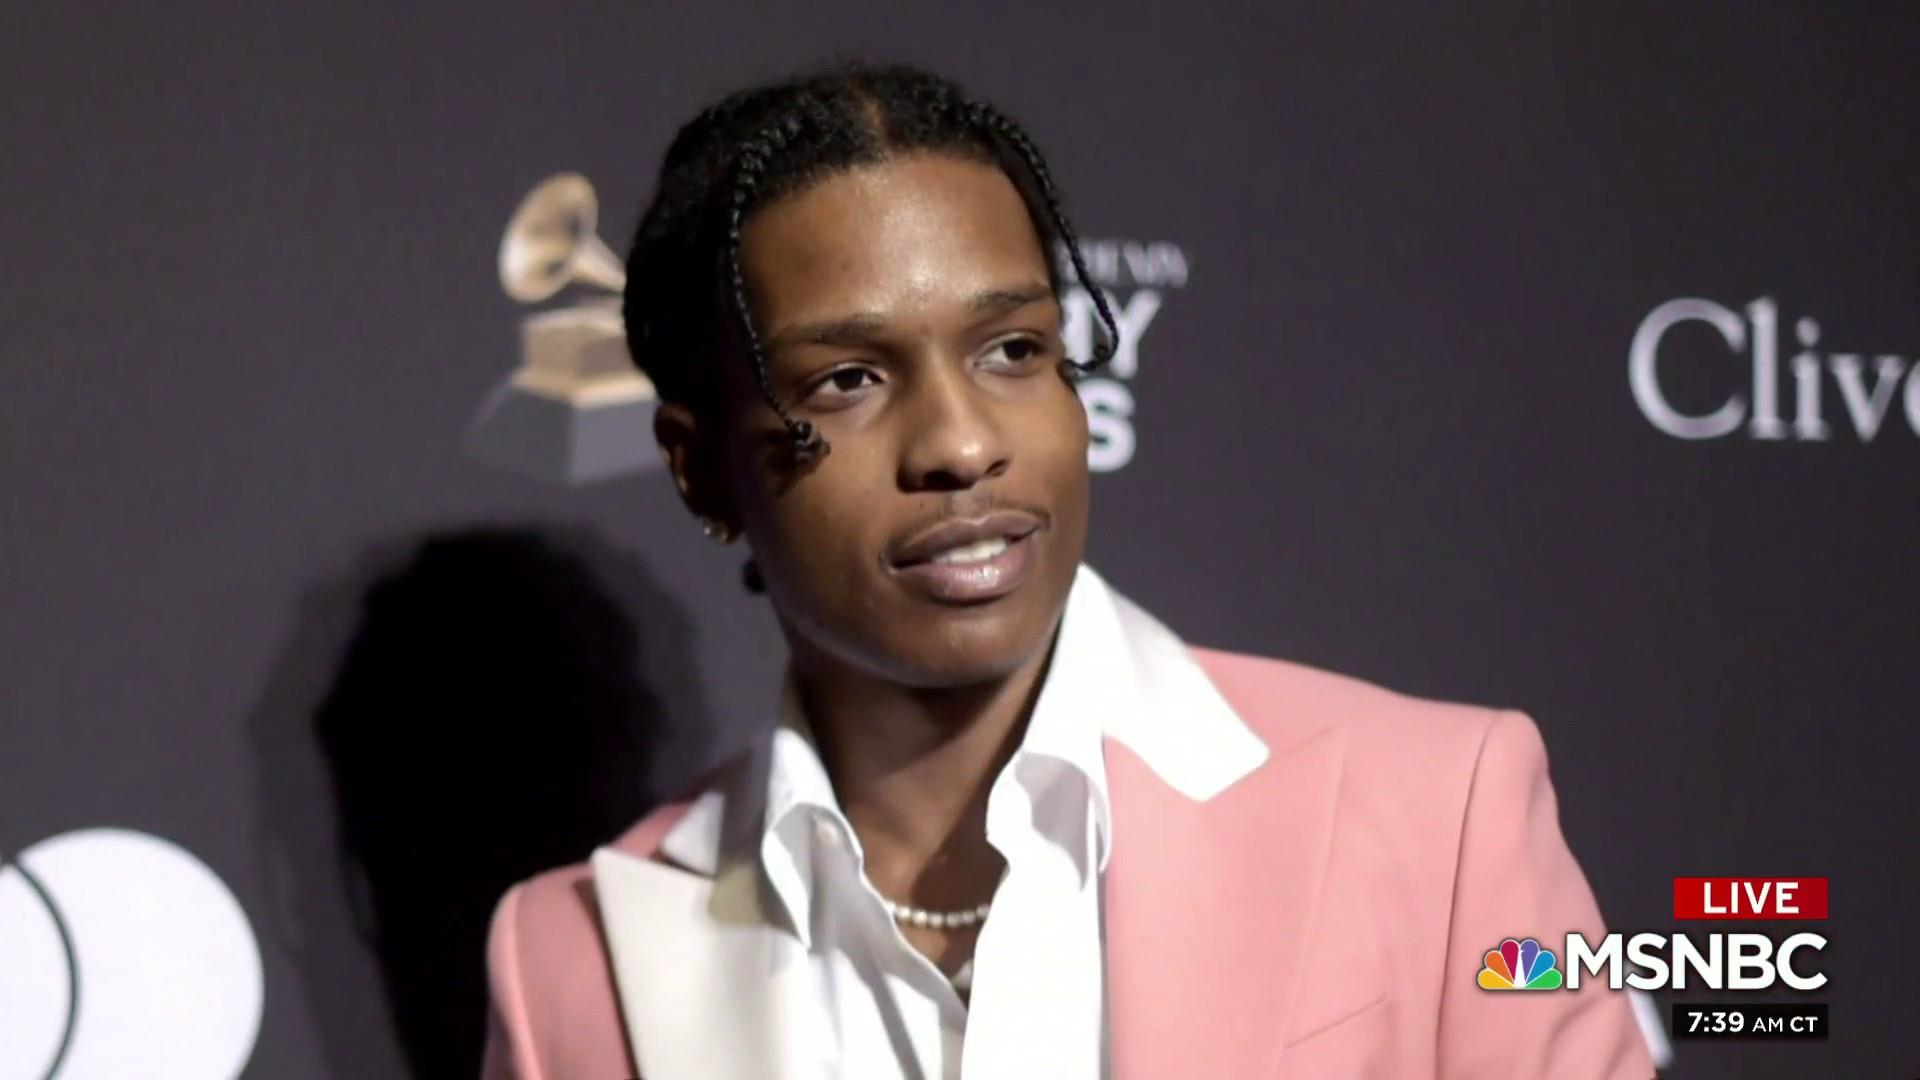 Members of Congress call for release of ASAP Rocky